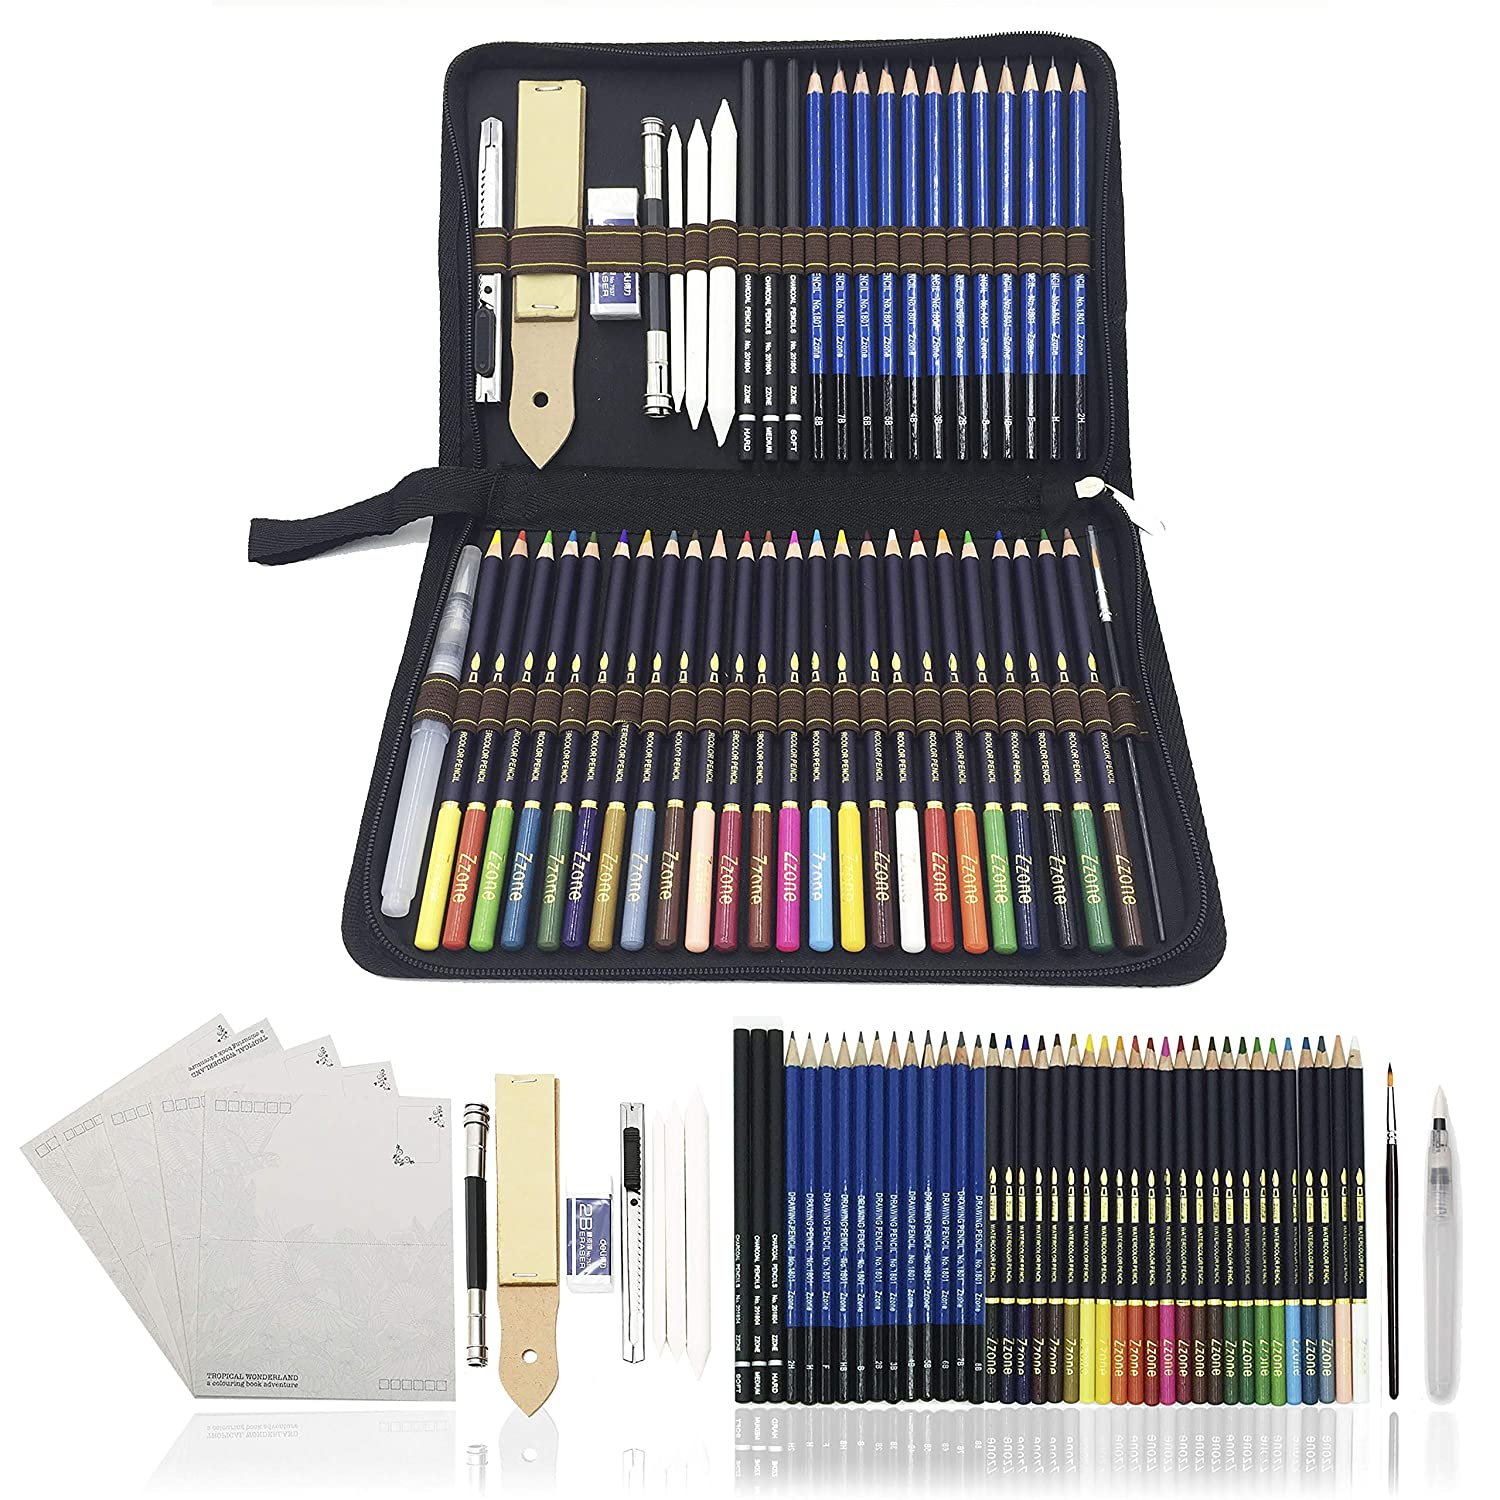 54pcs art colouring pencilswatercolour drawing pencils set sketch pencils with drawing tool in personalized large pencil casebest gift for students